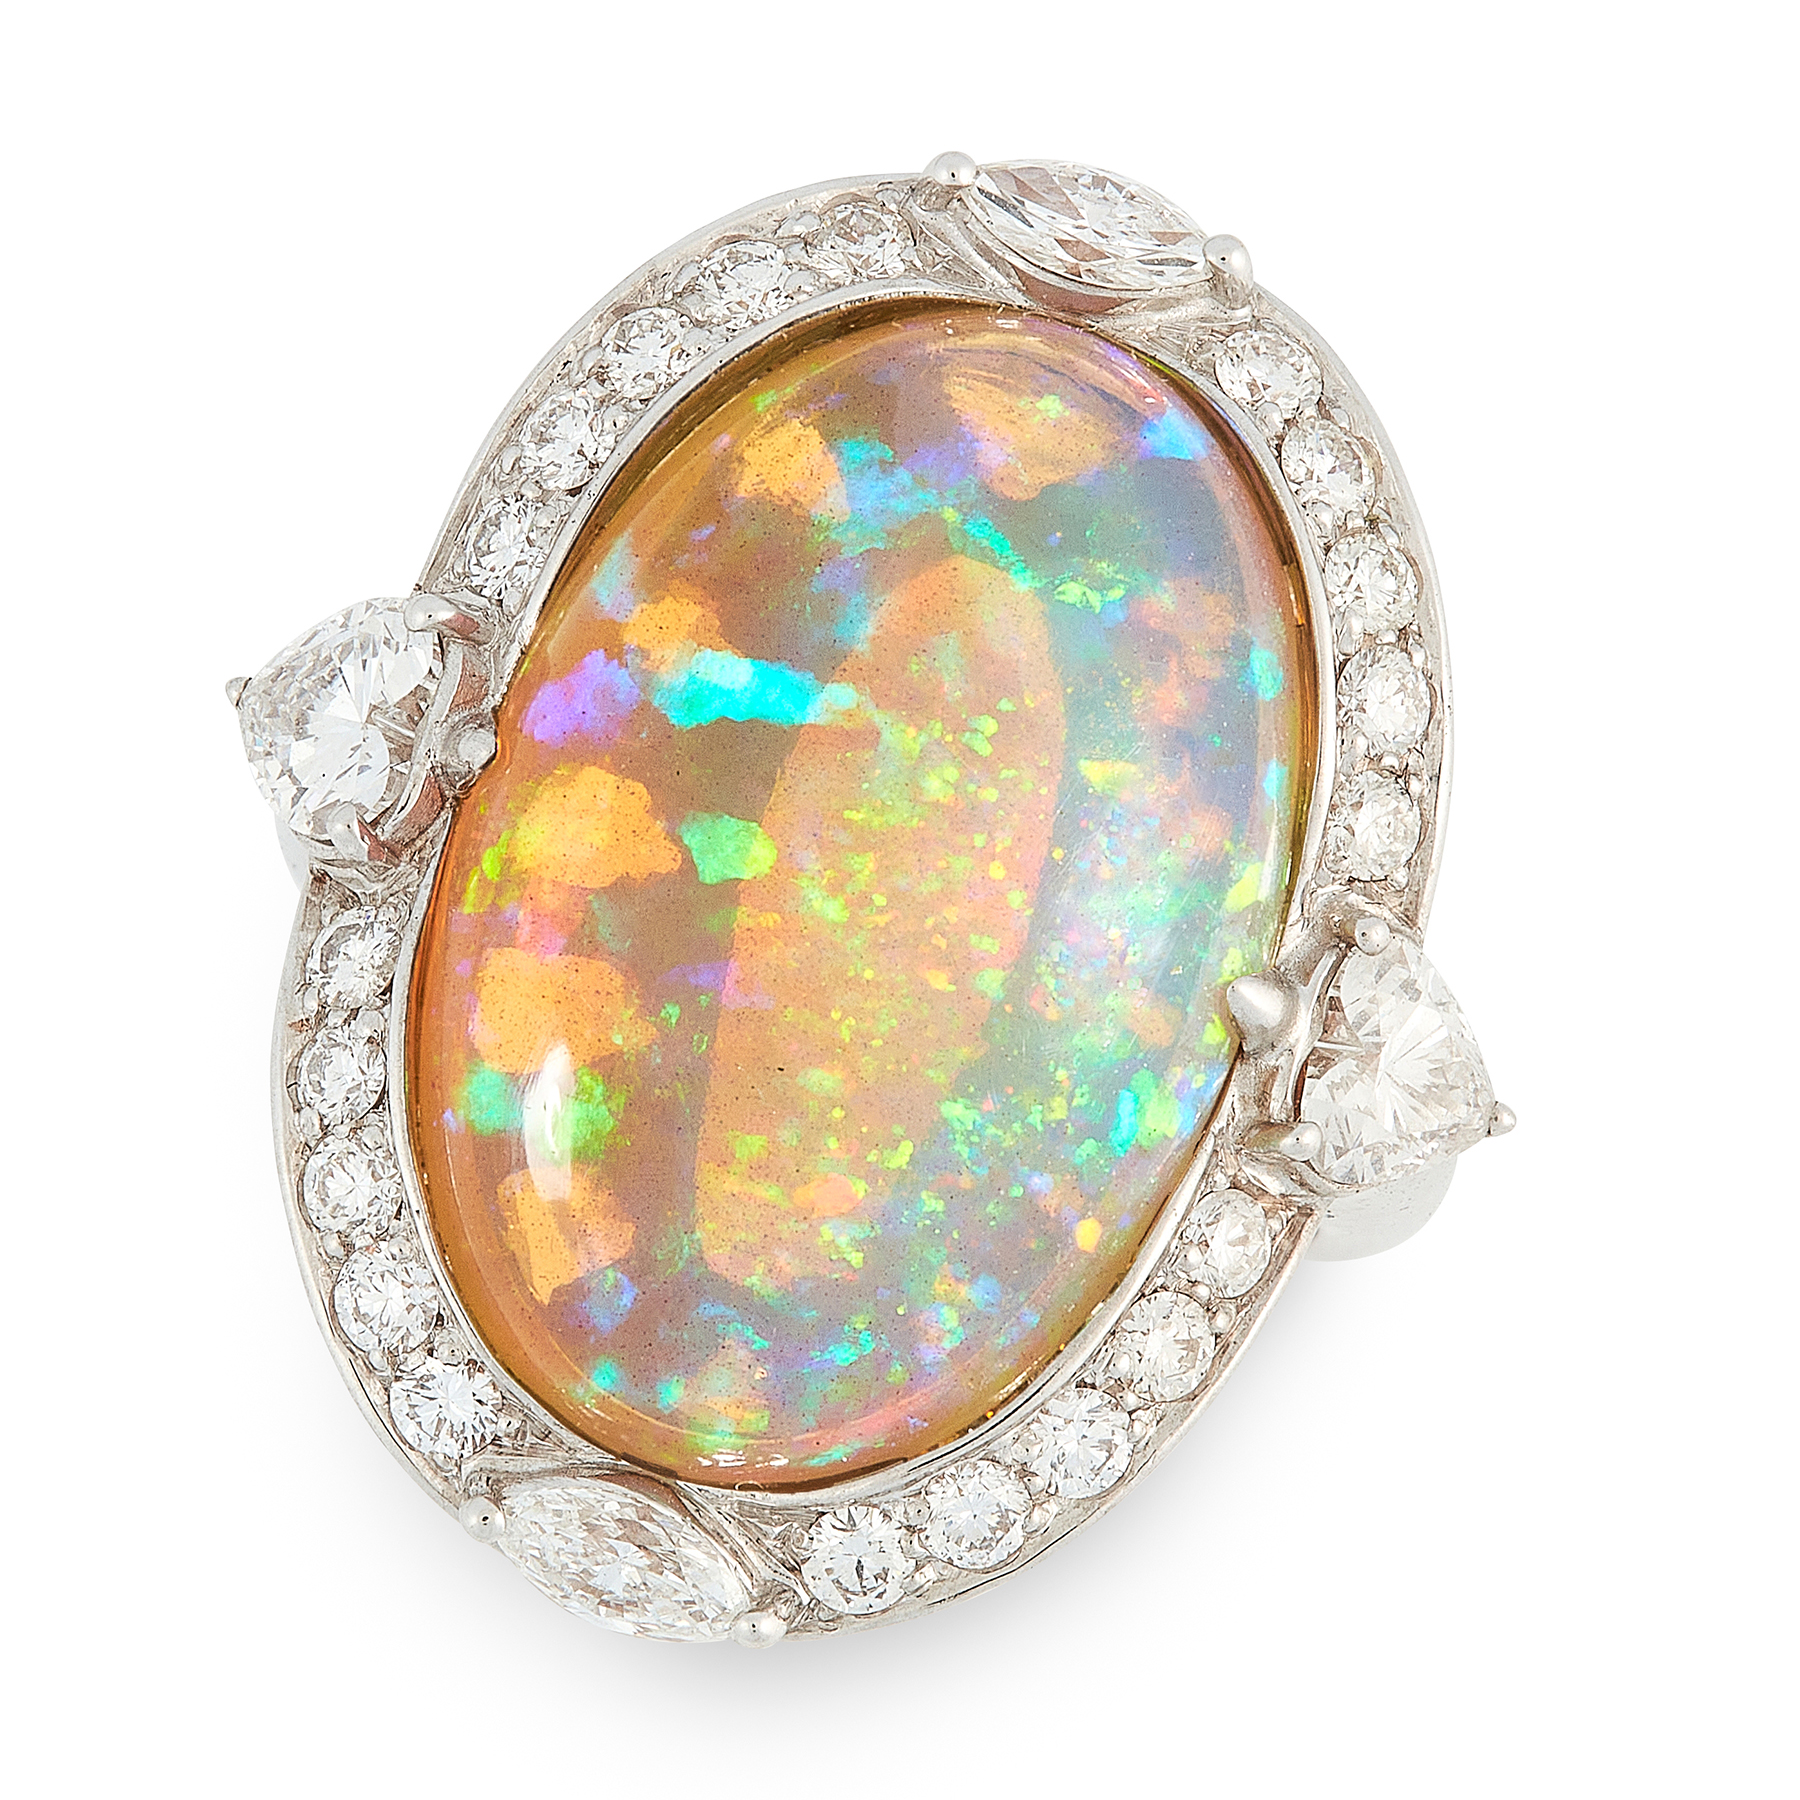 AN OPAL AND DIAMOND RING in 18ct white gold, set with an oval cabochon opal of 13.50 carats,